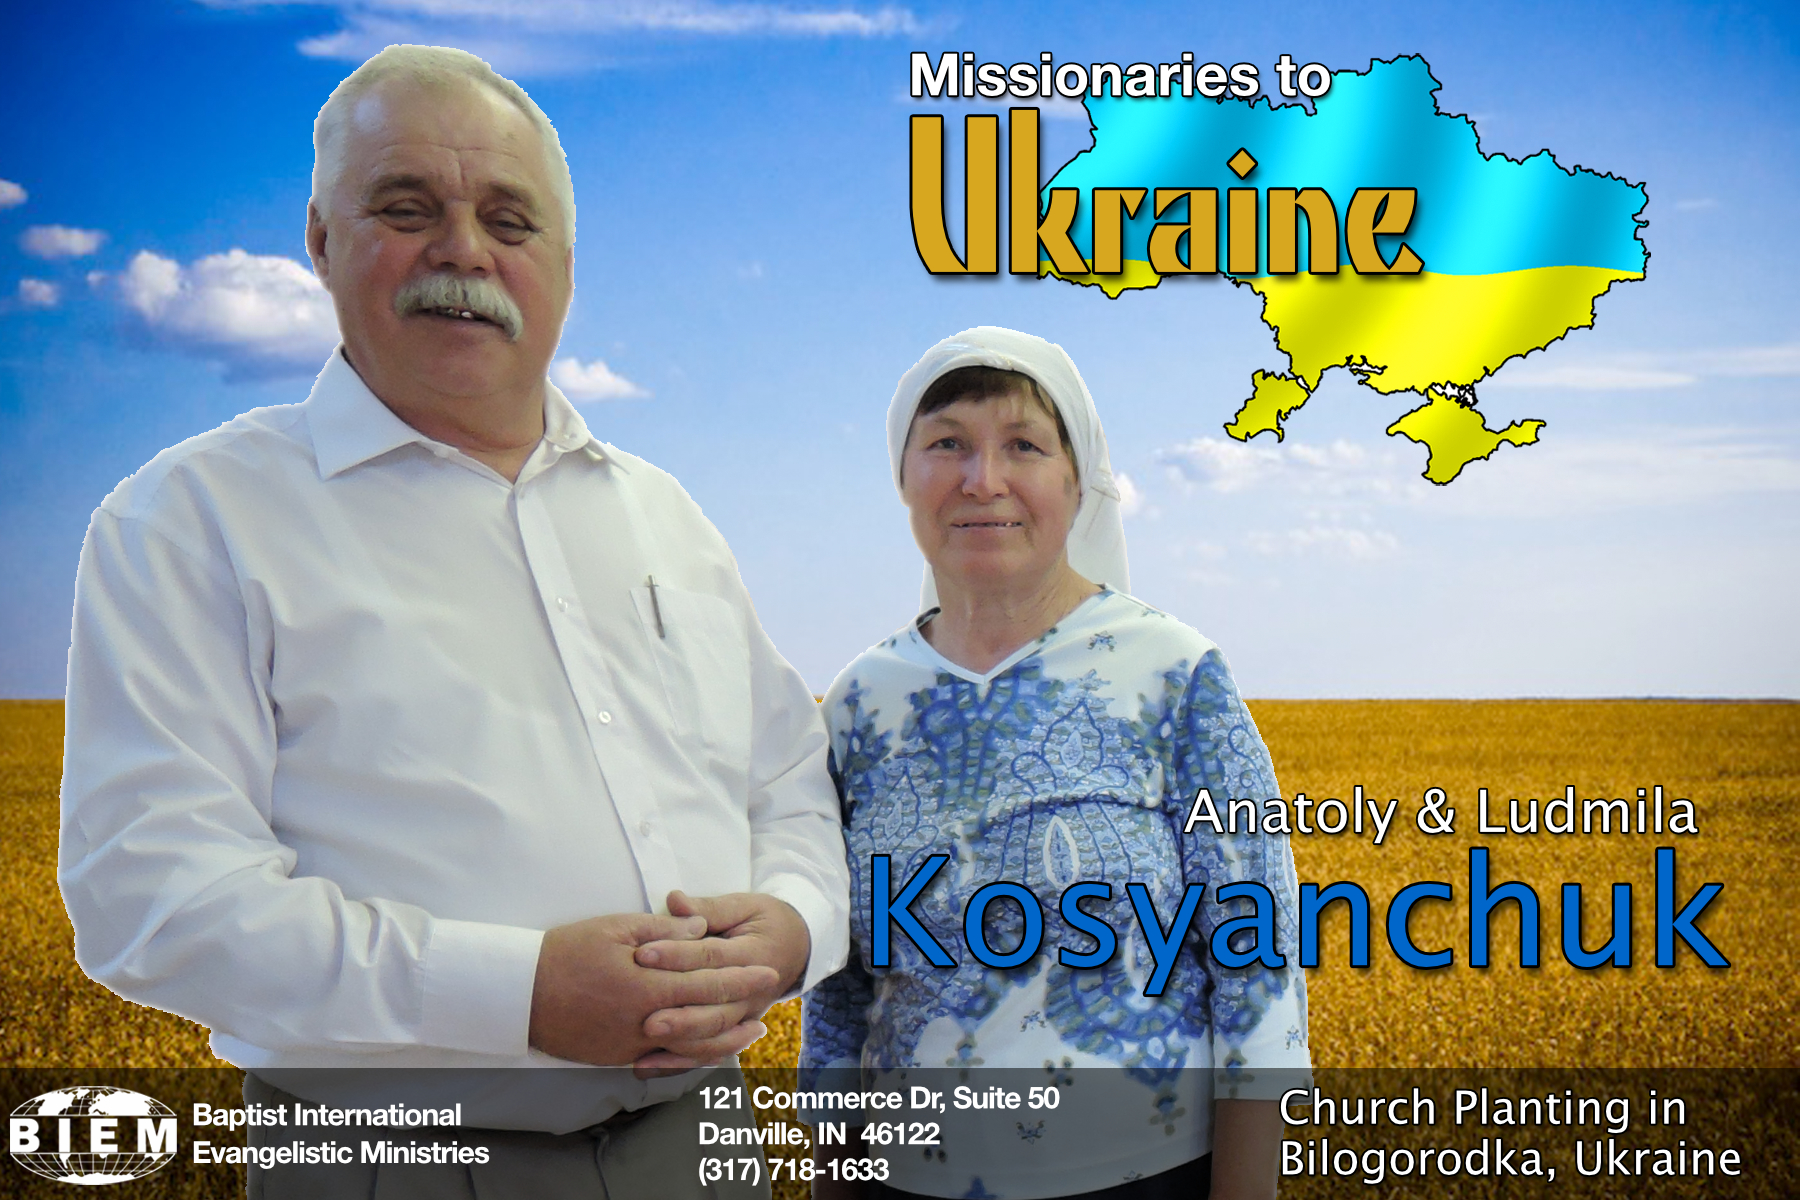 Kosyanchuk prayer card 1.jpg